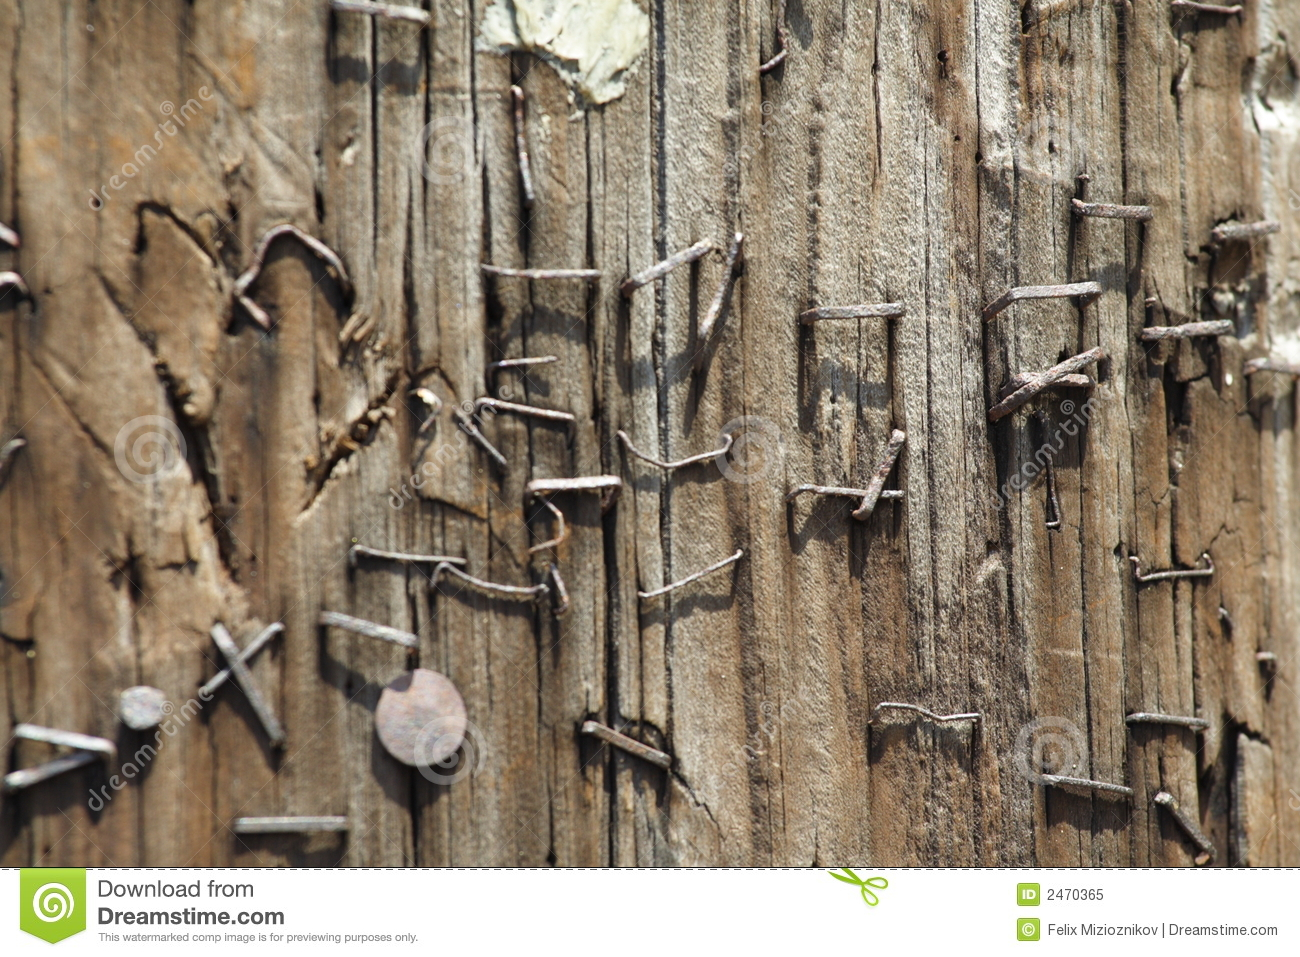 Old staples in a wood pole royalty free stock photo for Wood floor nails or staples